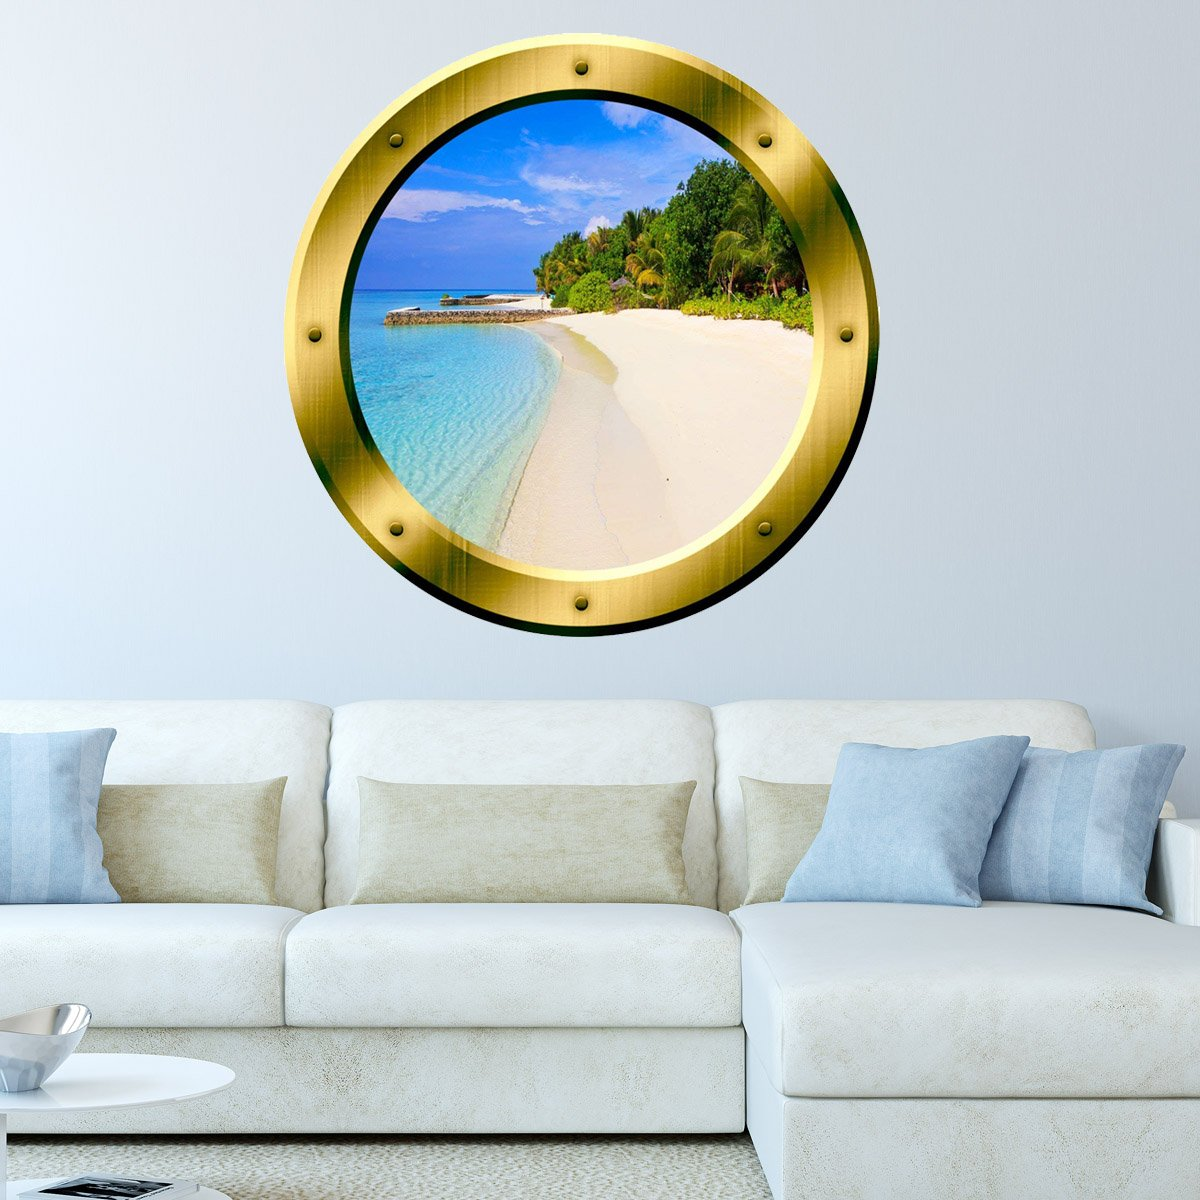 VWAQ Tropical Sandy Beach Gold Porthole Window Peel N Stick Vinyl Wall Decal - GP36 - VWAQ Vinyl Wall Art Quotes and Prints